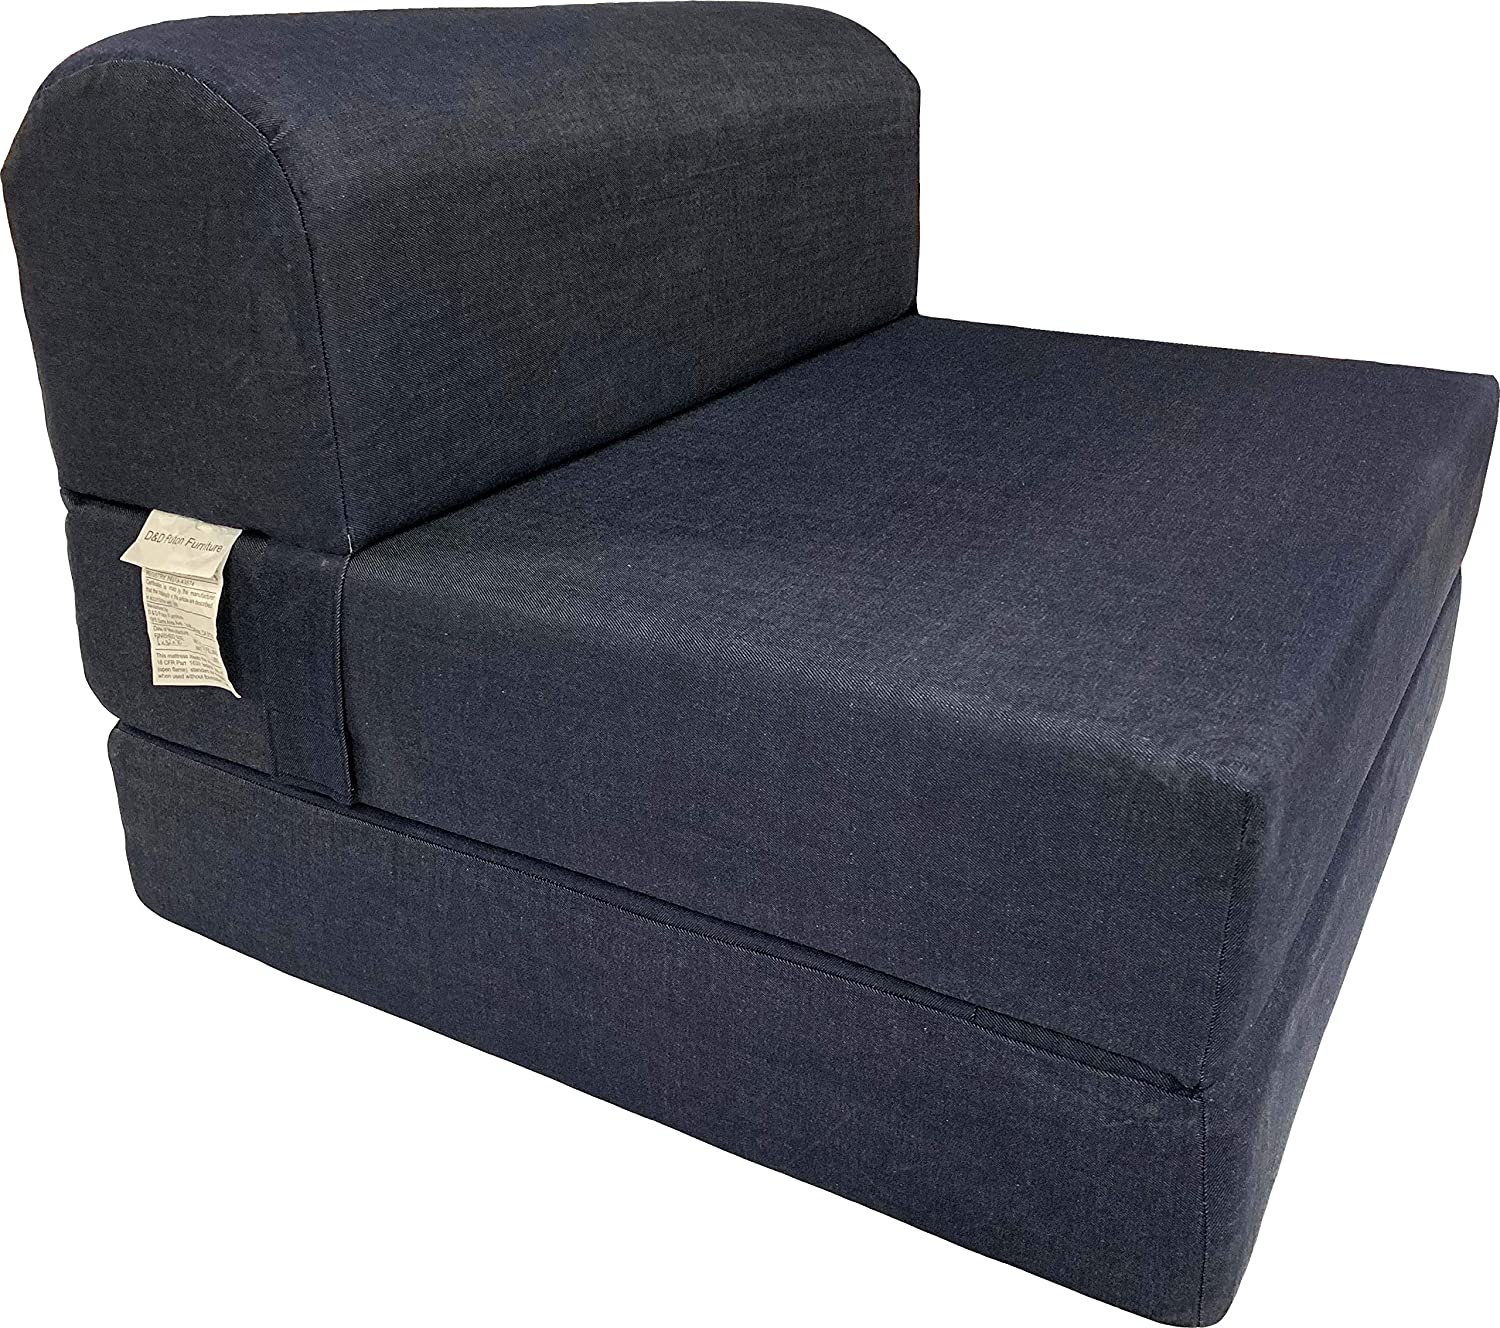 Marvelous Denim Sleeper Chair Folding Foam Bed Sized 6 Thick X 32 Pdpeps Interior Chair Design Pdpepsorg